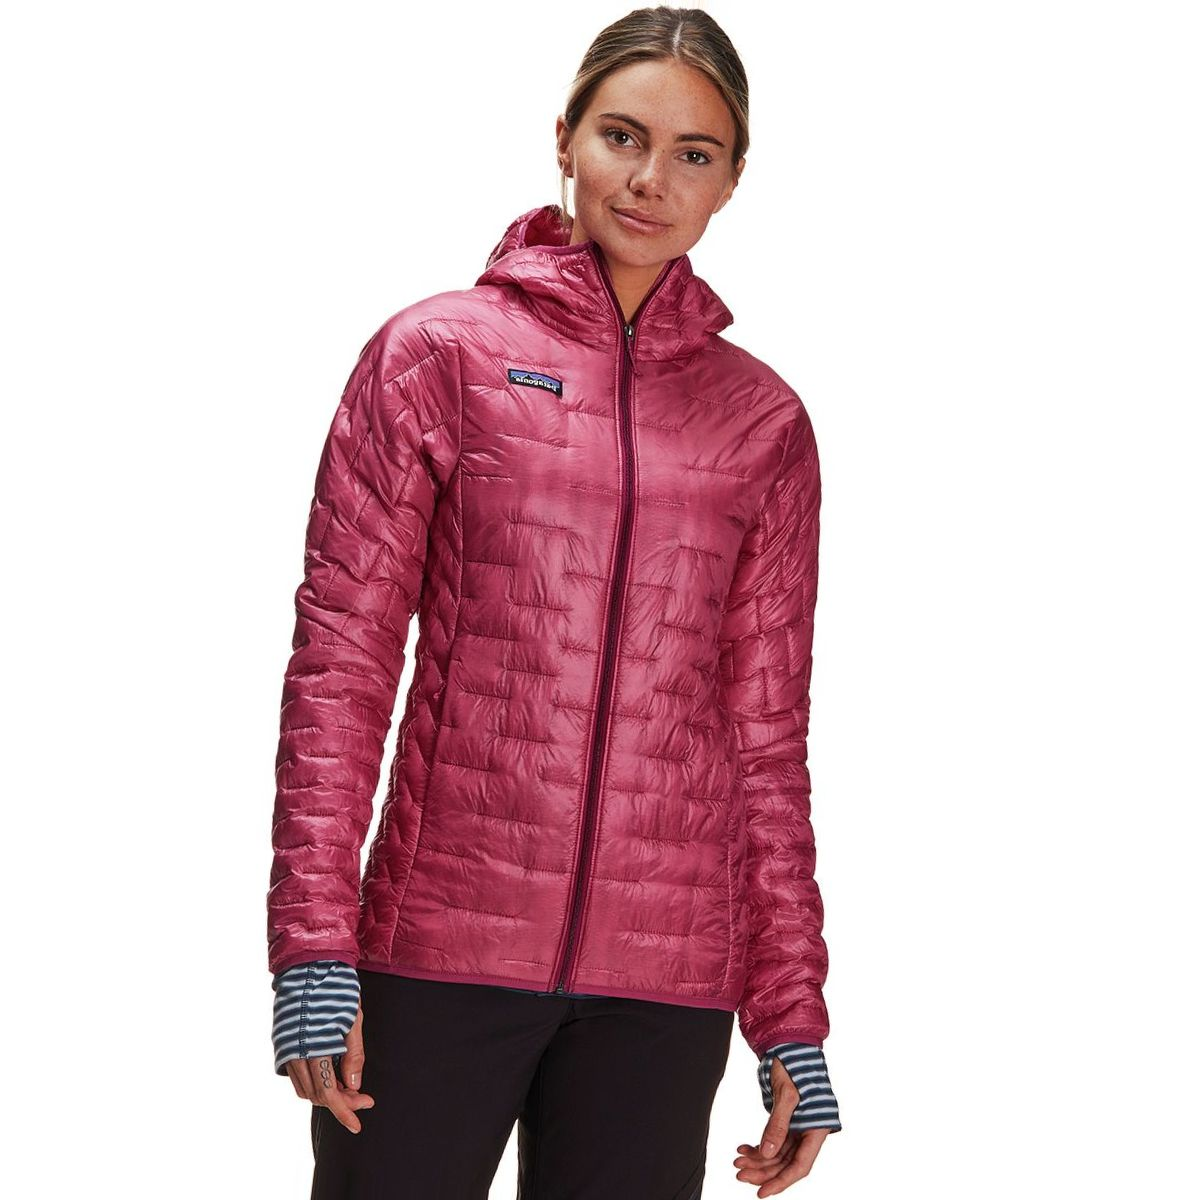 Patagonia Micro Puff Hooded Insulated Jacket - Women's